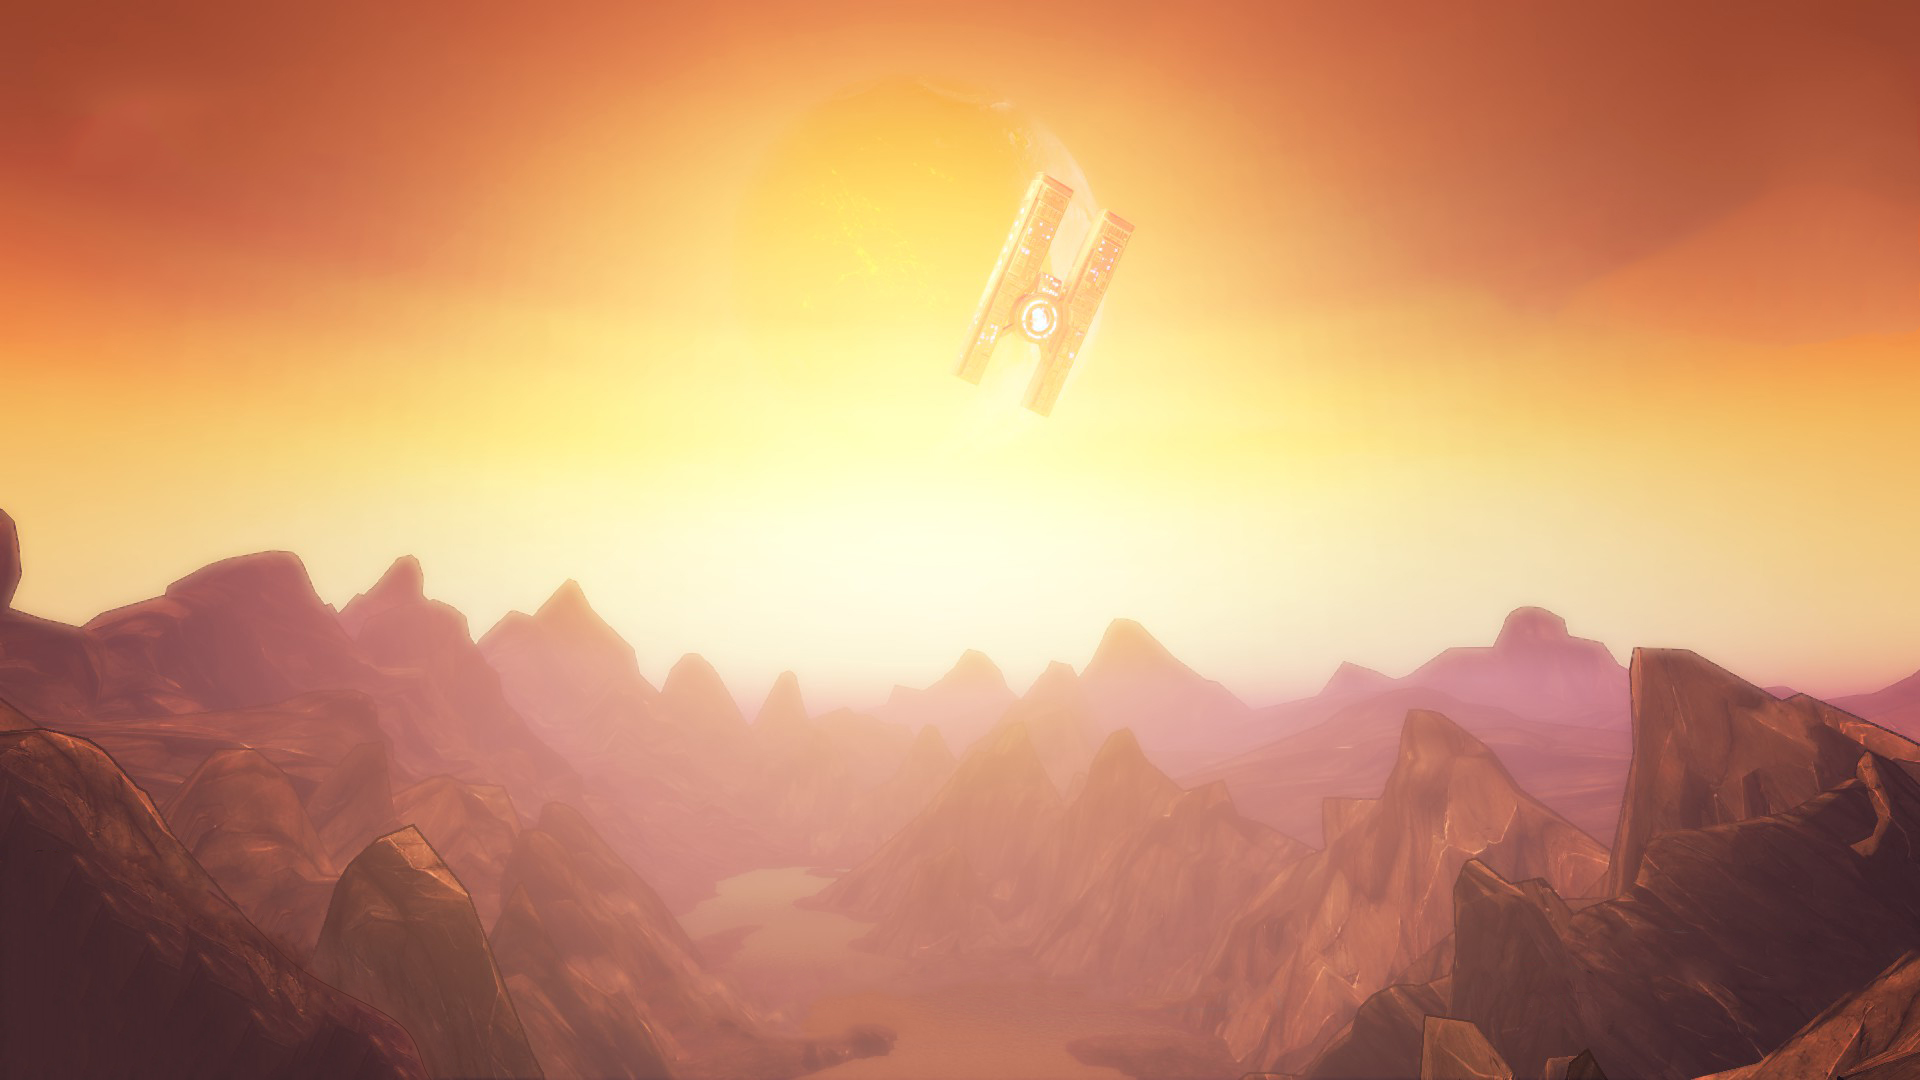 Borderlands 2 Is Just Beautiful By DowncomTA On DeviantArt